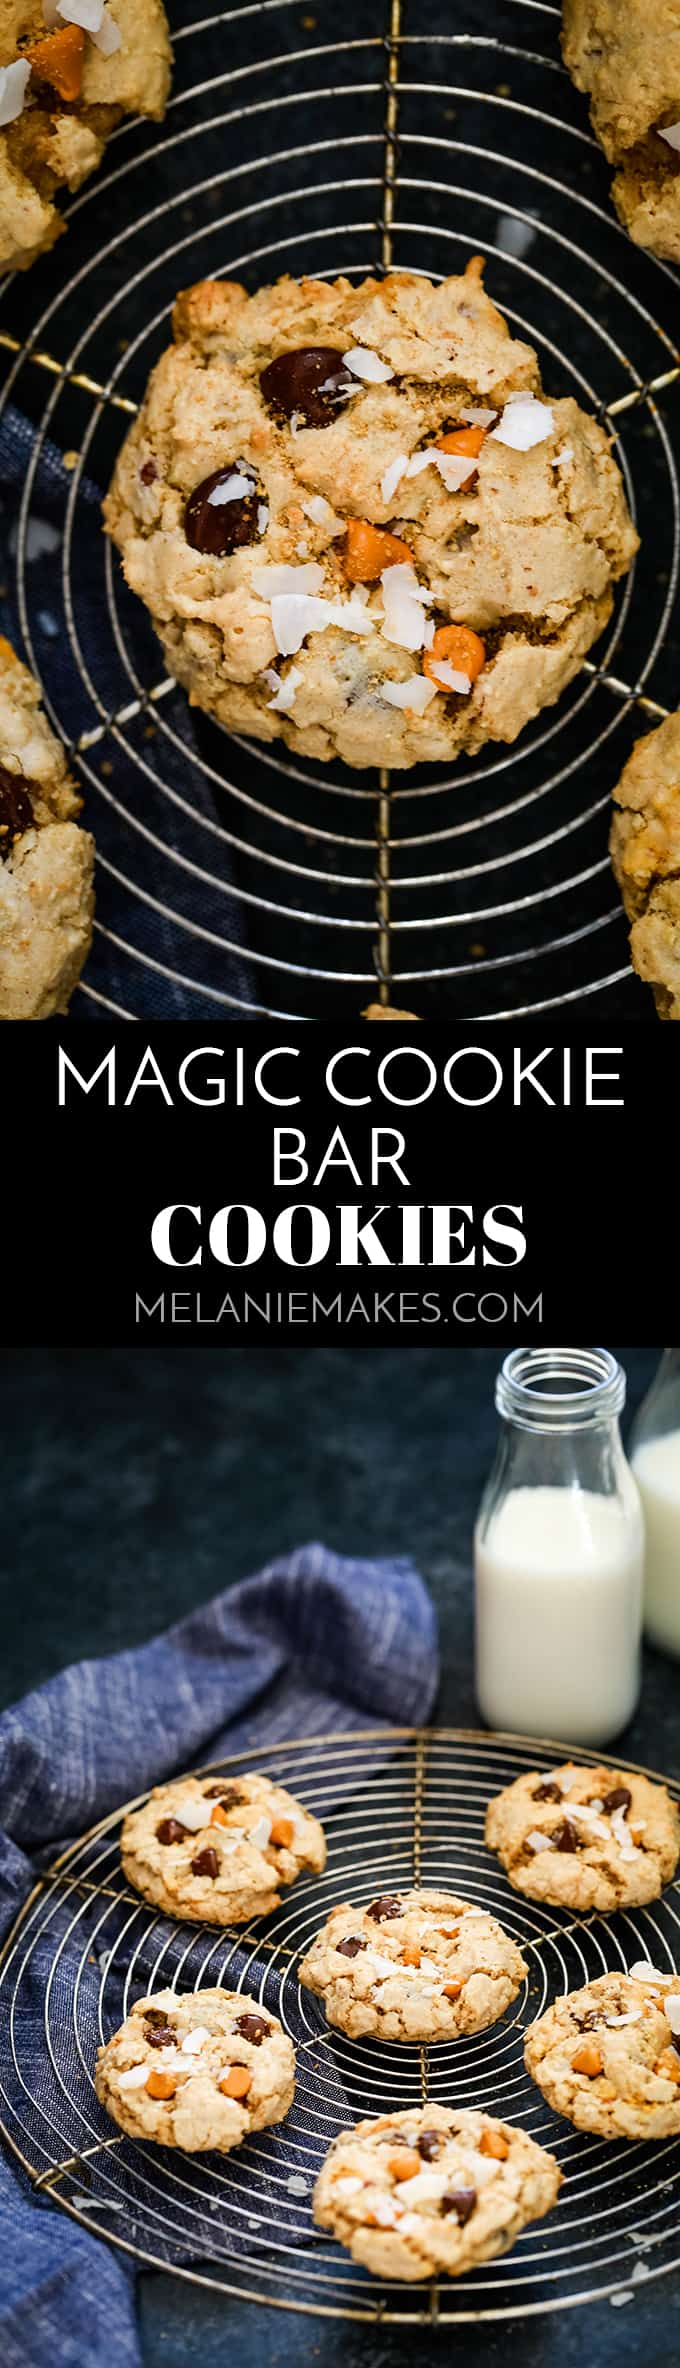 Loaded with chocolate and butterscotch chips, coconut, pecans and graham cracker crumbs, these Magic Cookie Bar Cookies are guaranteed to disappear quickly! #cookies #chocolate #butterscotch #coconut #dessertrecipes #magiccookiebars